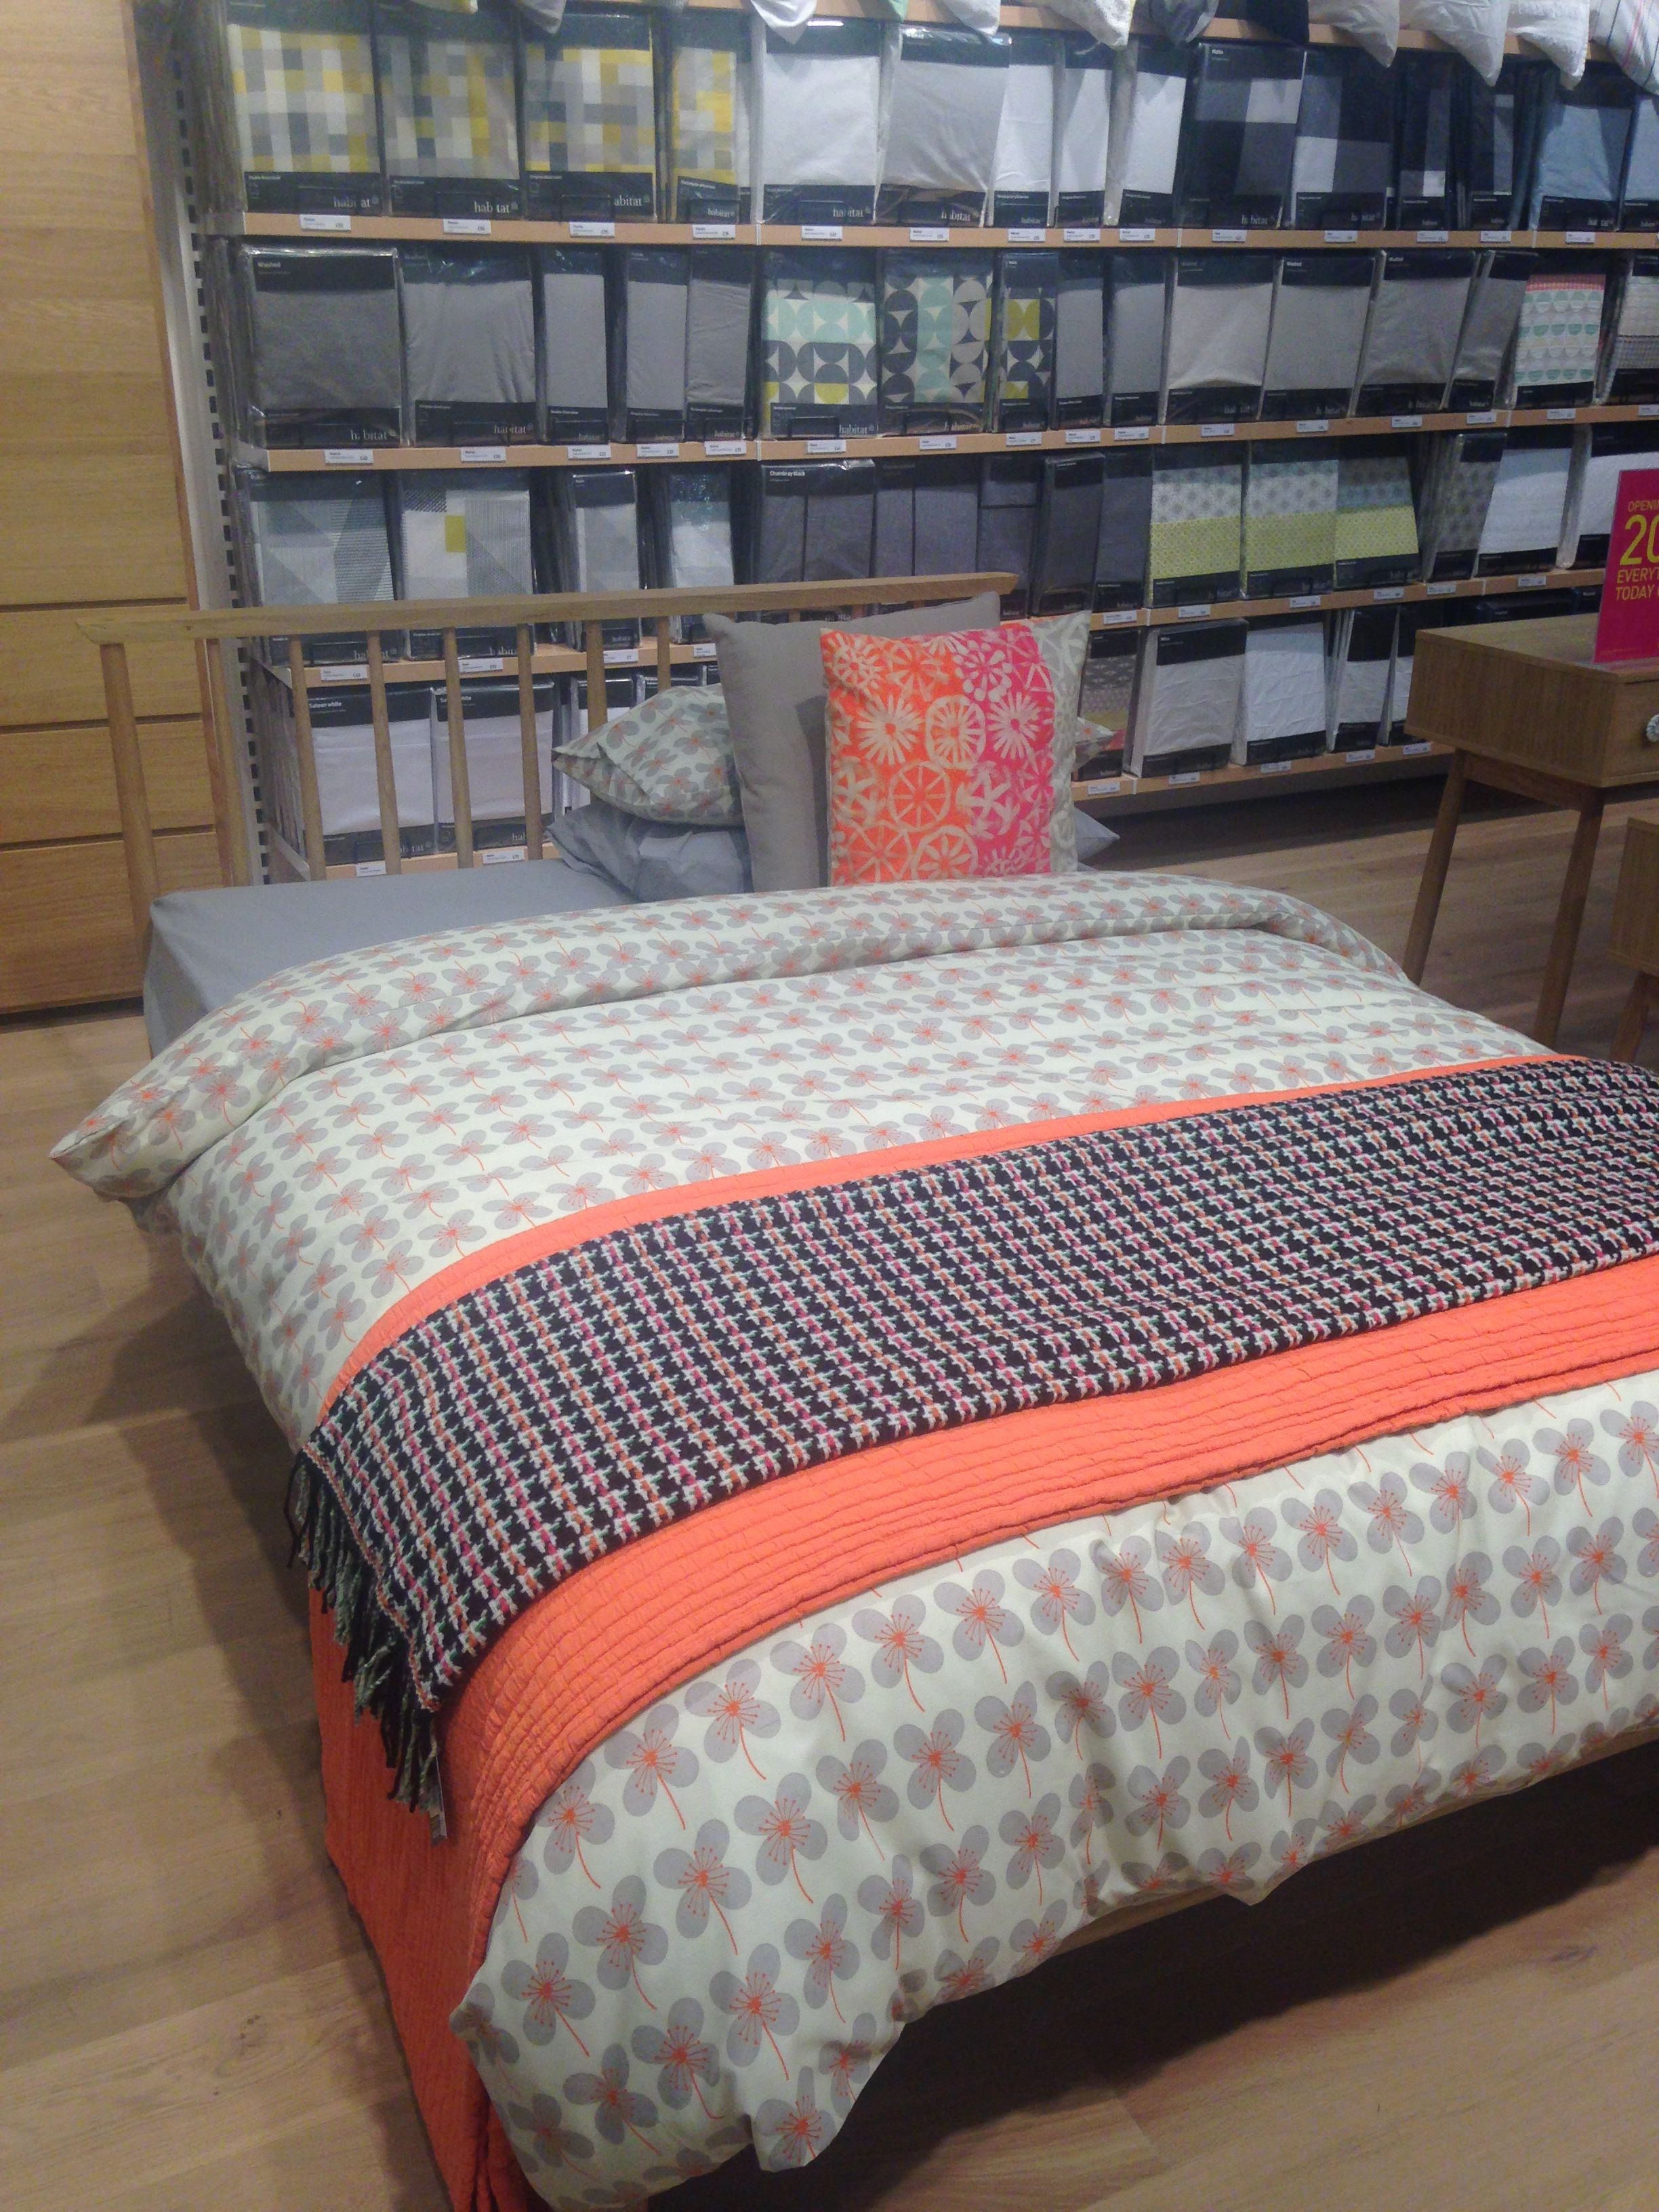 with bedding softy robeshaw robshaw jonathan pillows cheap and room for interior living chairs elegant bed john design